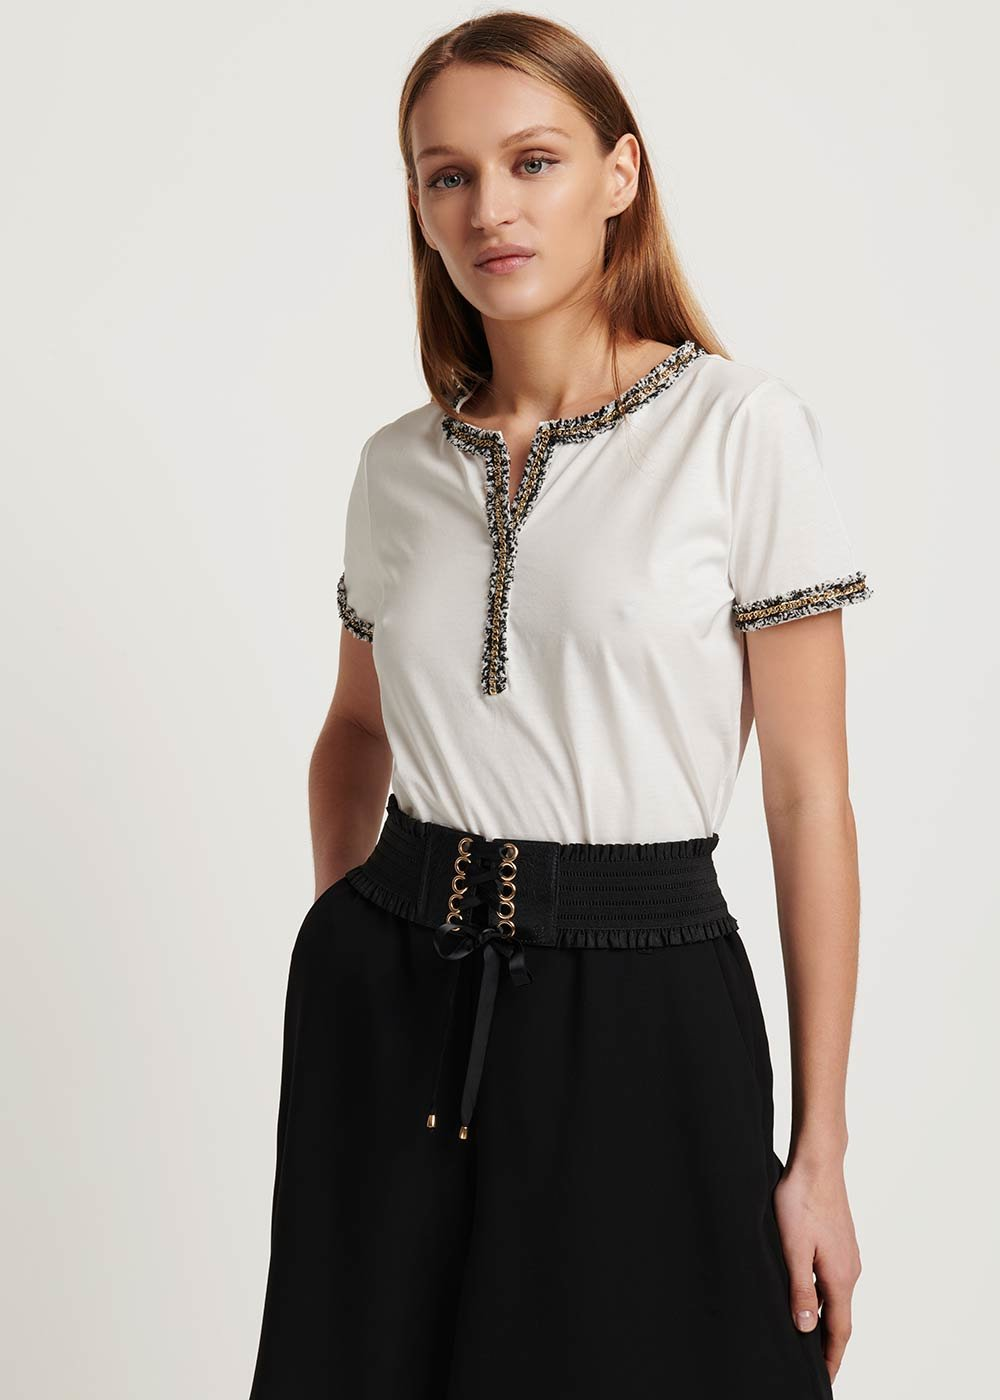 Susy T-shirt with bouclé detail - White - Woman